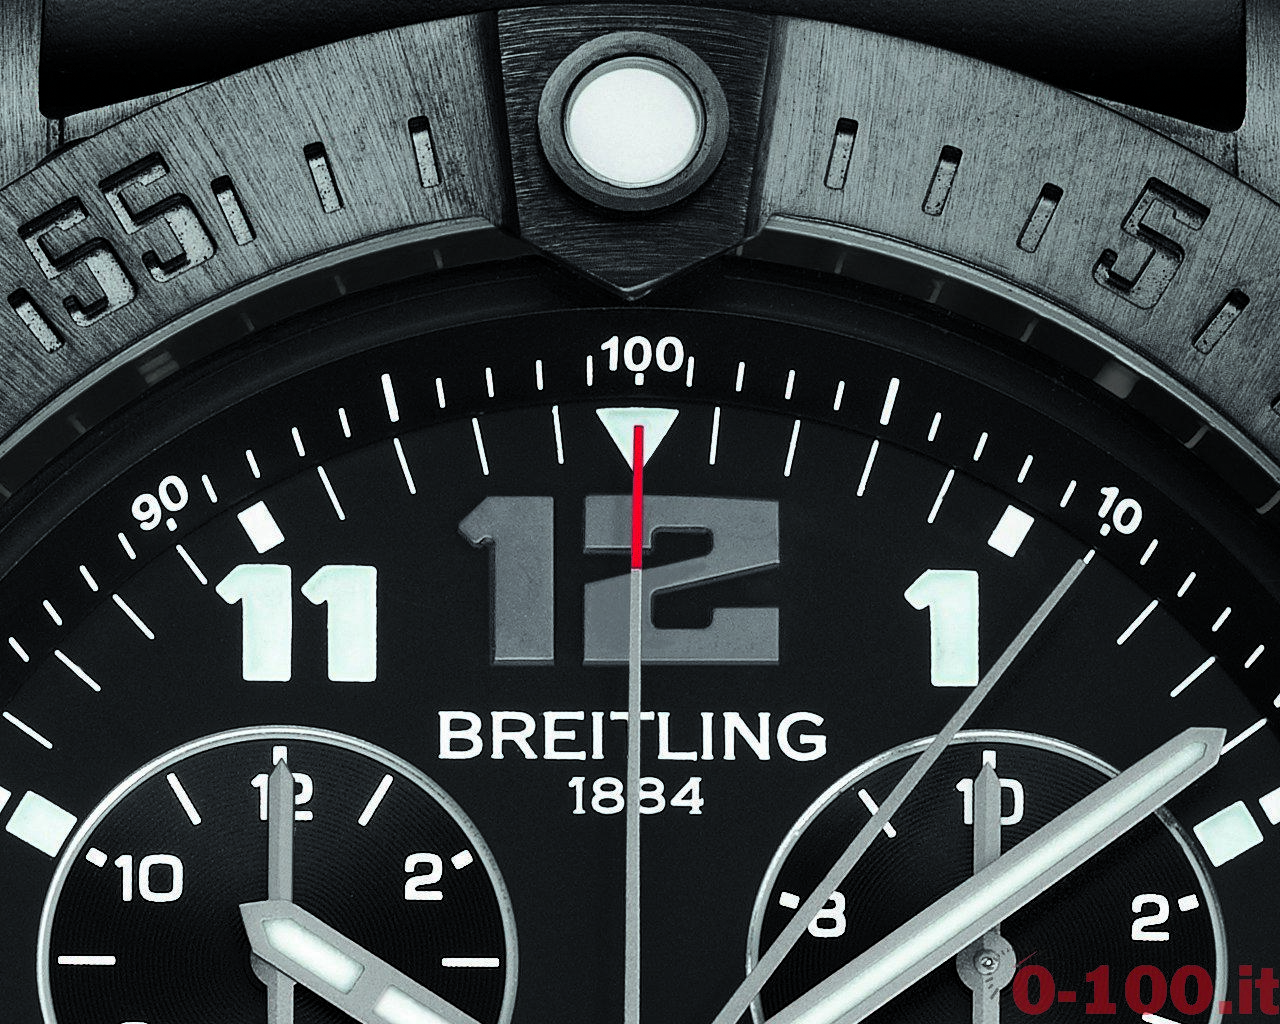 breitling-chronograph-s3-swiss-space-systems-0-100-6